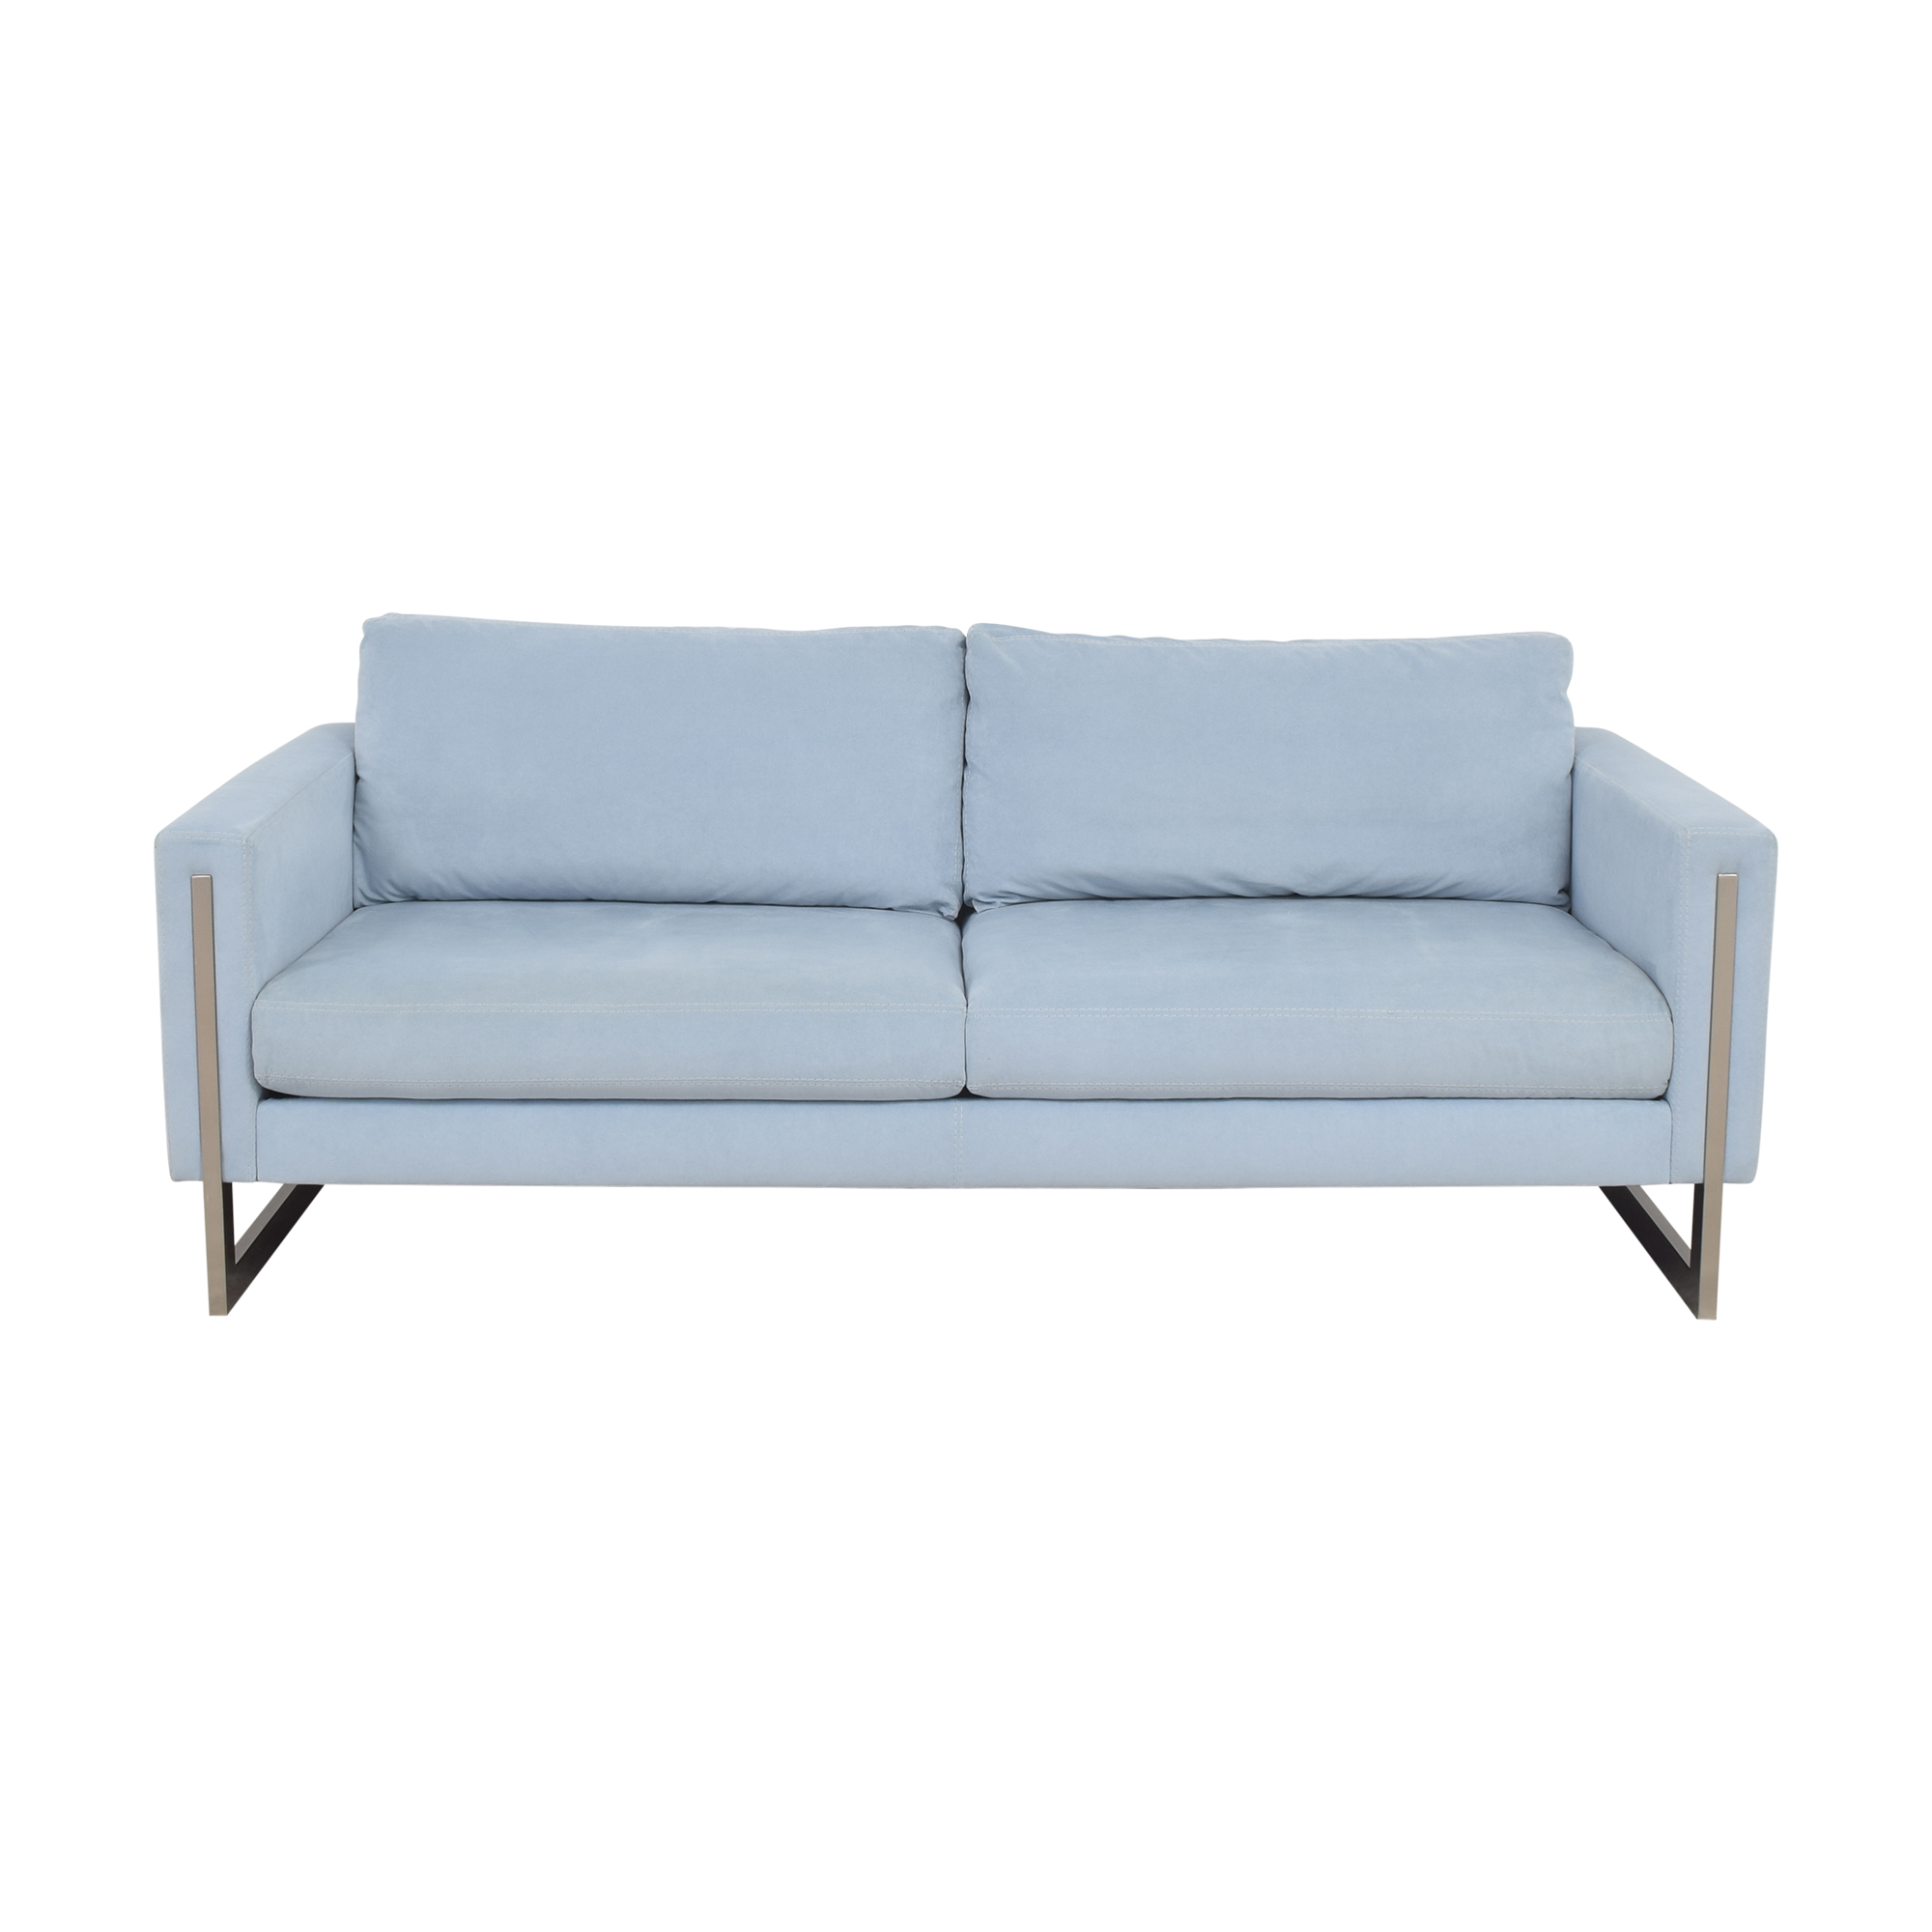 American Leather Savino Two Cushion Sofa sale